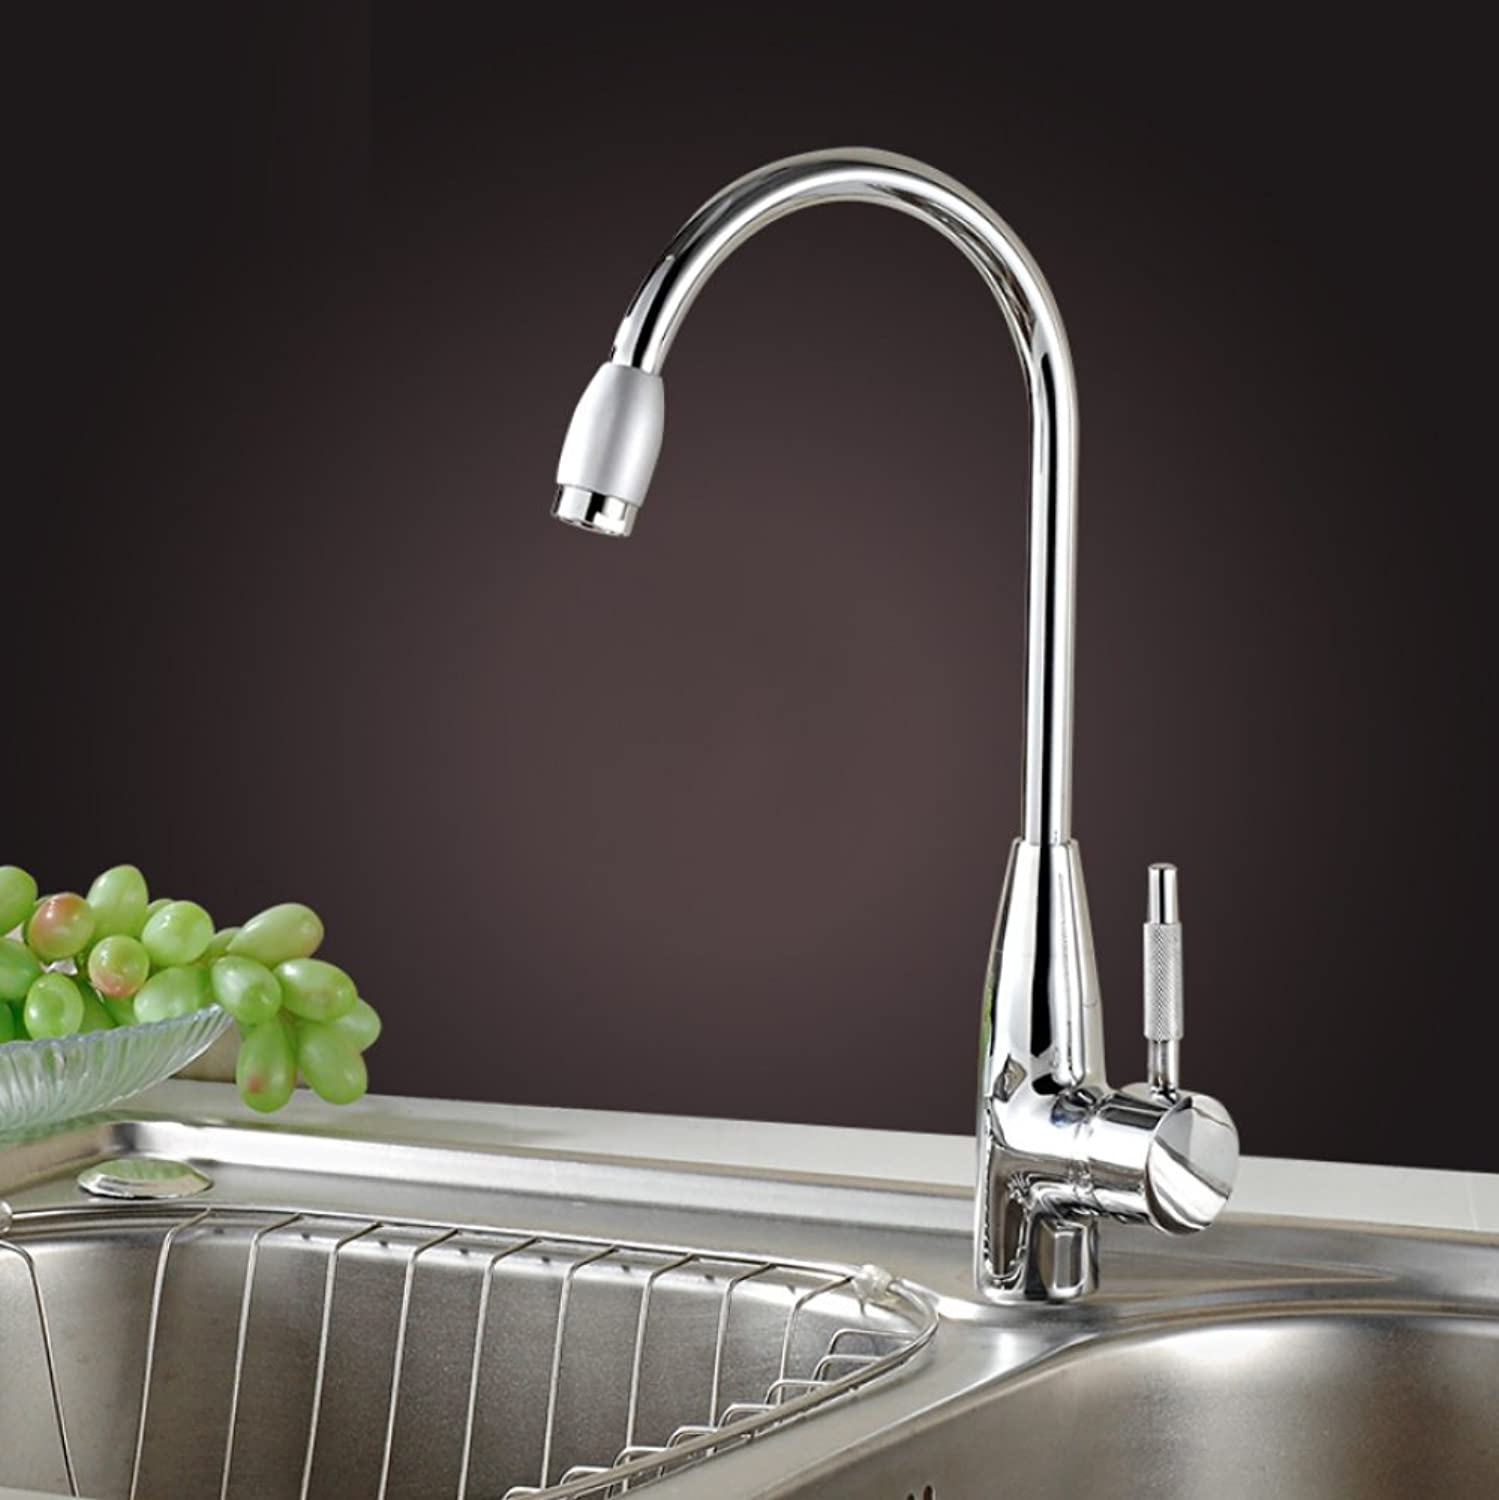 LD&P Kitchen taps mixer high pressure,Kitchen all bronze Household Cold and hot mixing Taps Faucet,chromium plating Can redate Single hole Wash the dishes basin Faucet